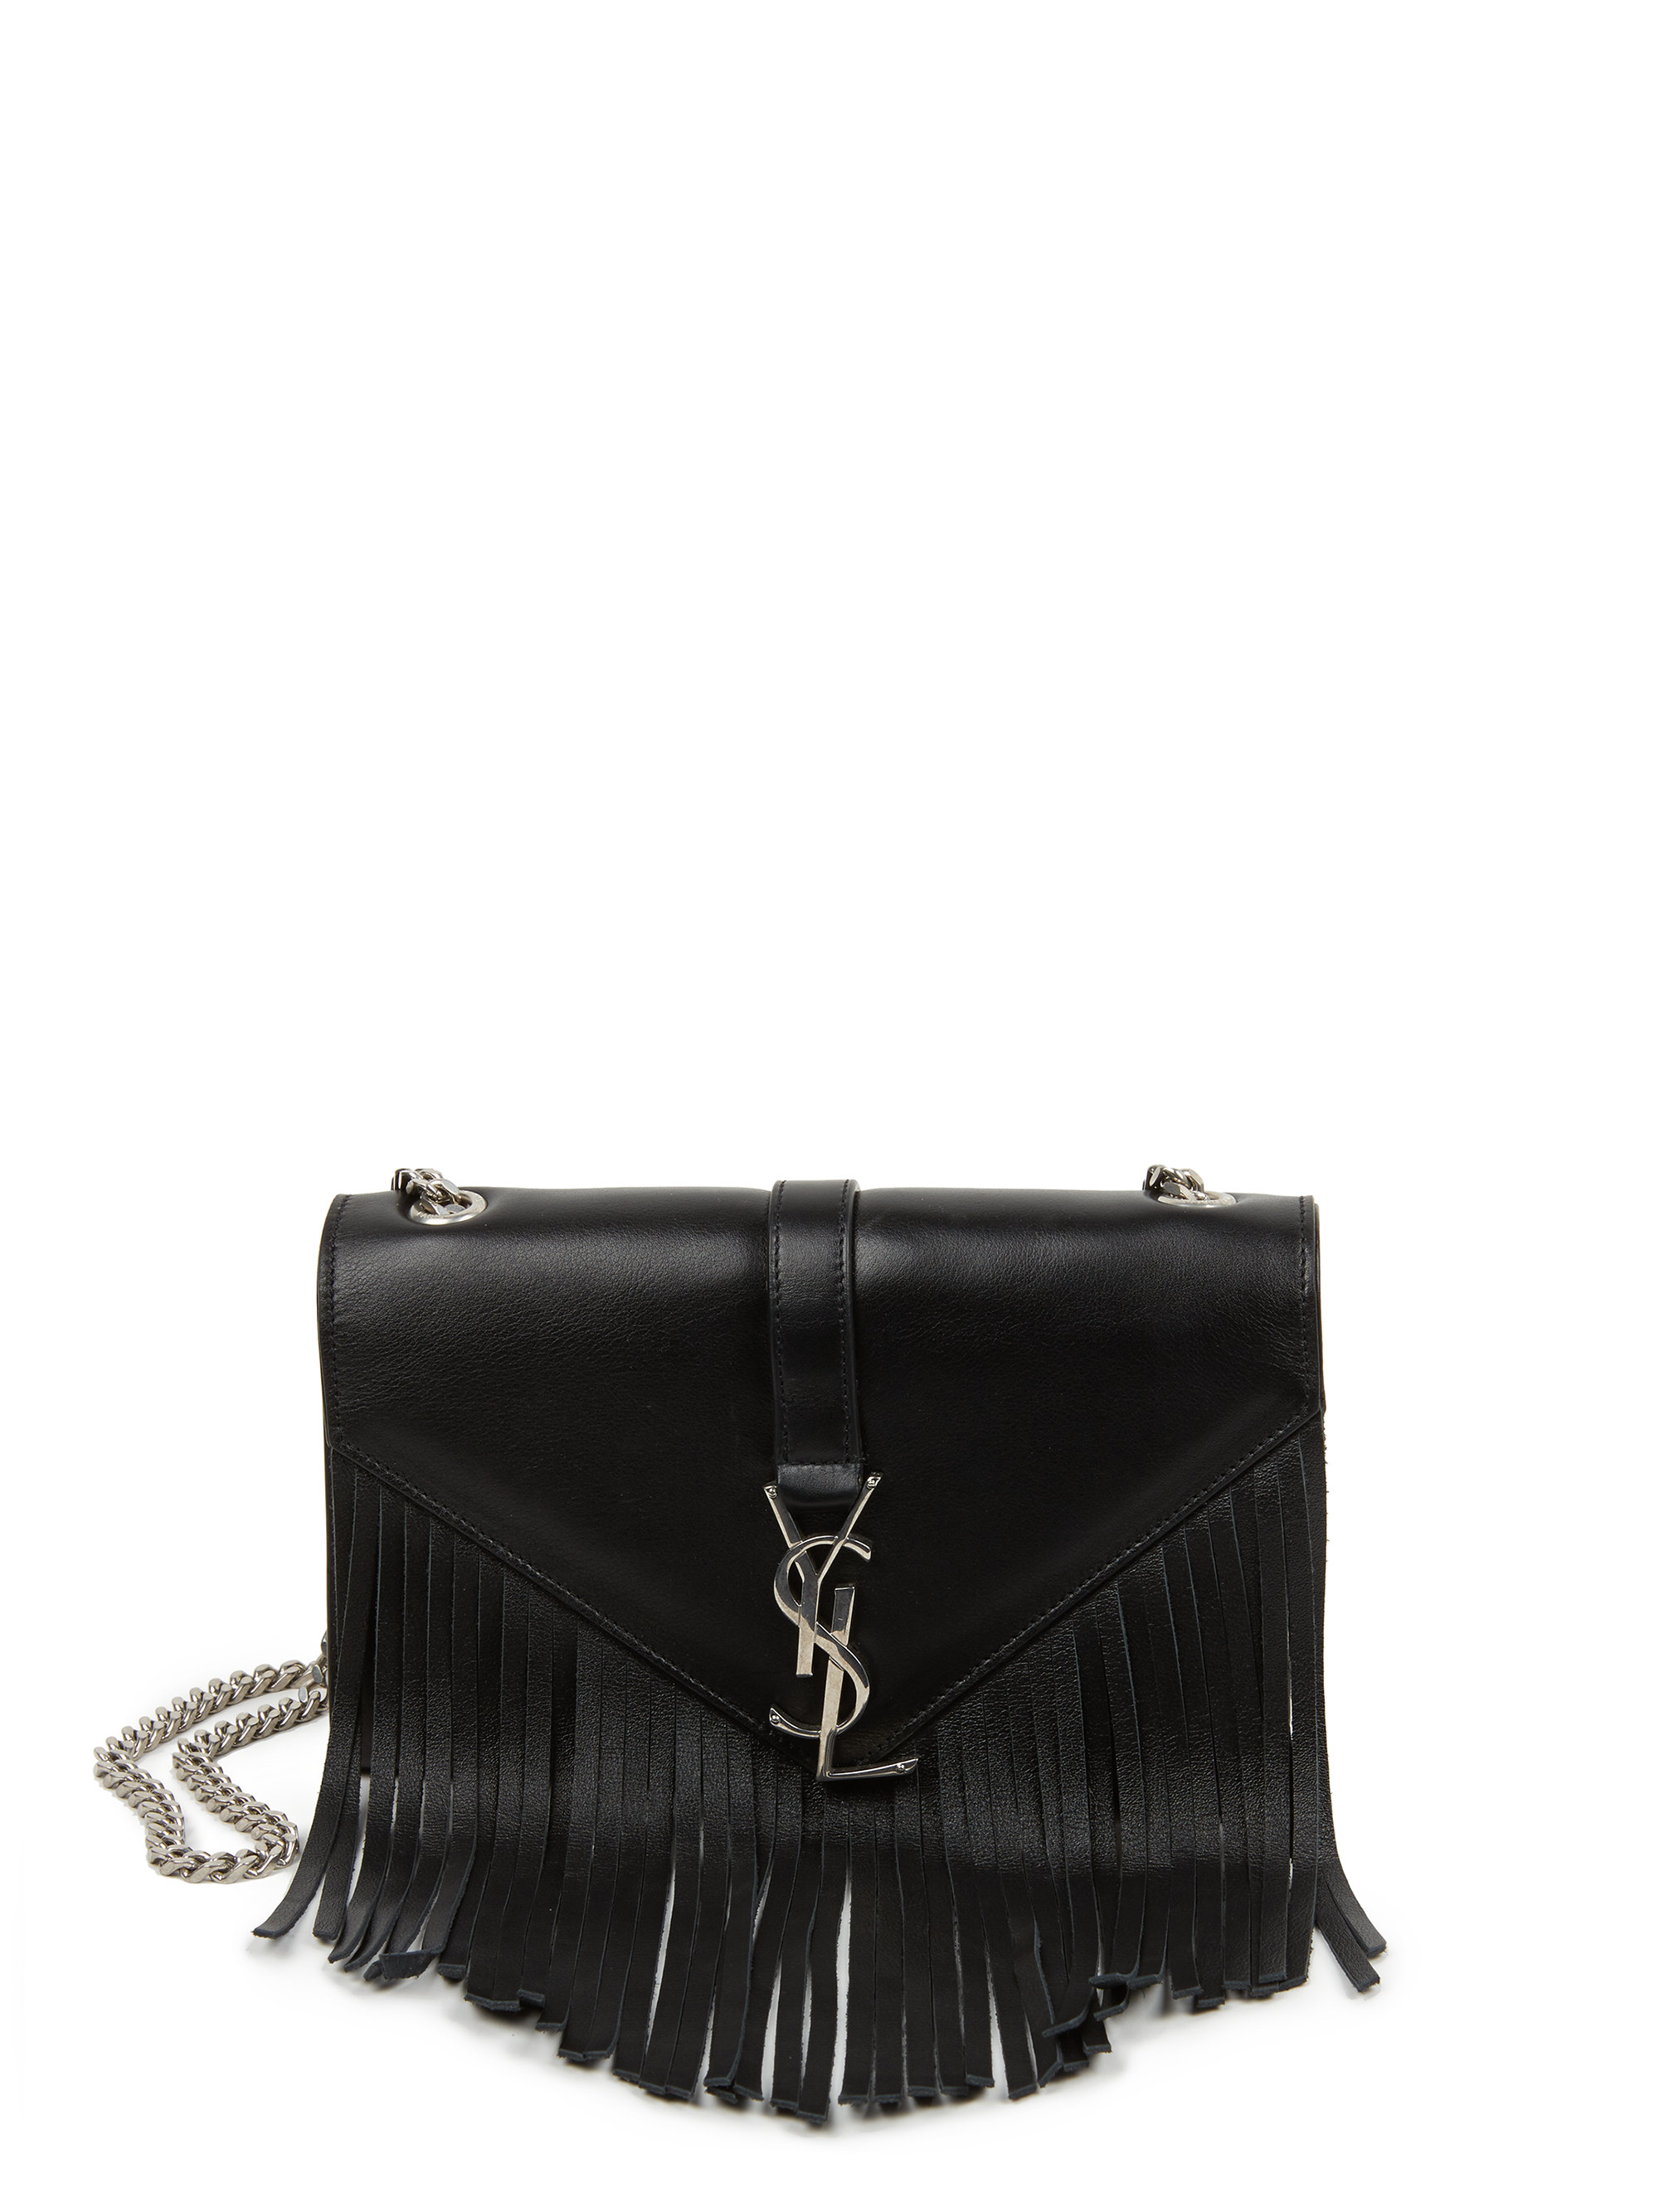 y purses - small monogram saint laurent fringed crossbody bag in black ...